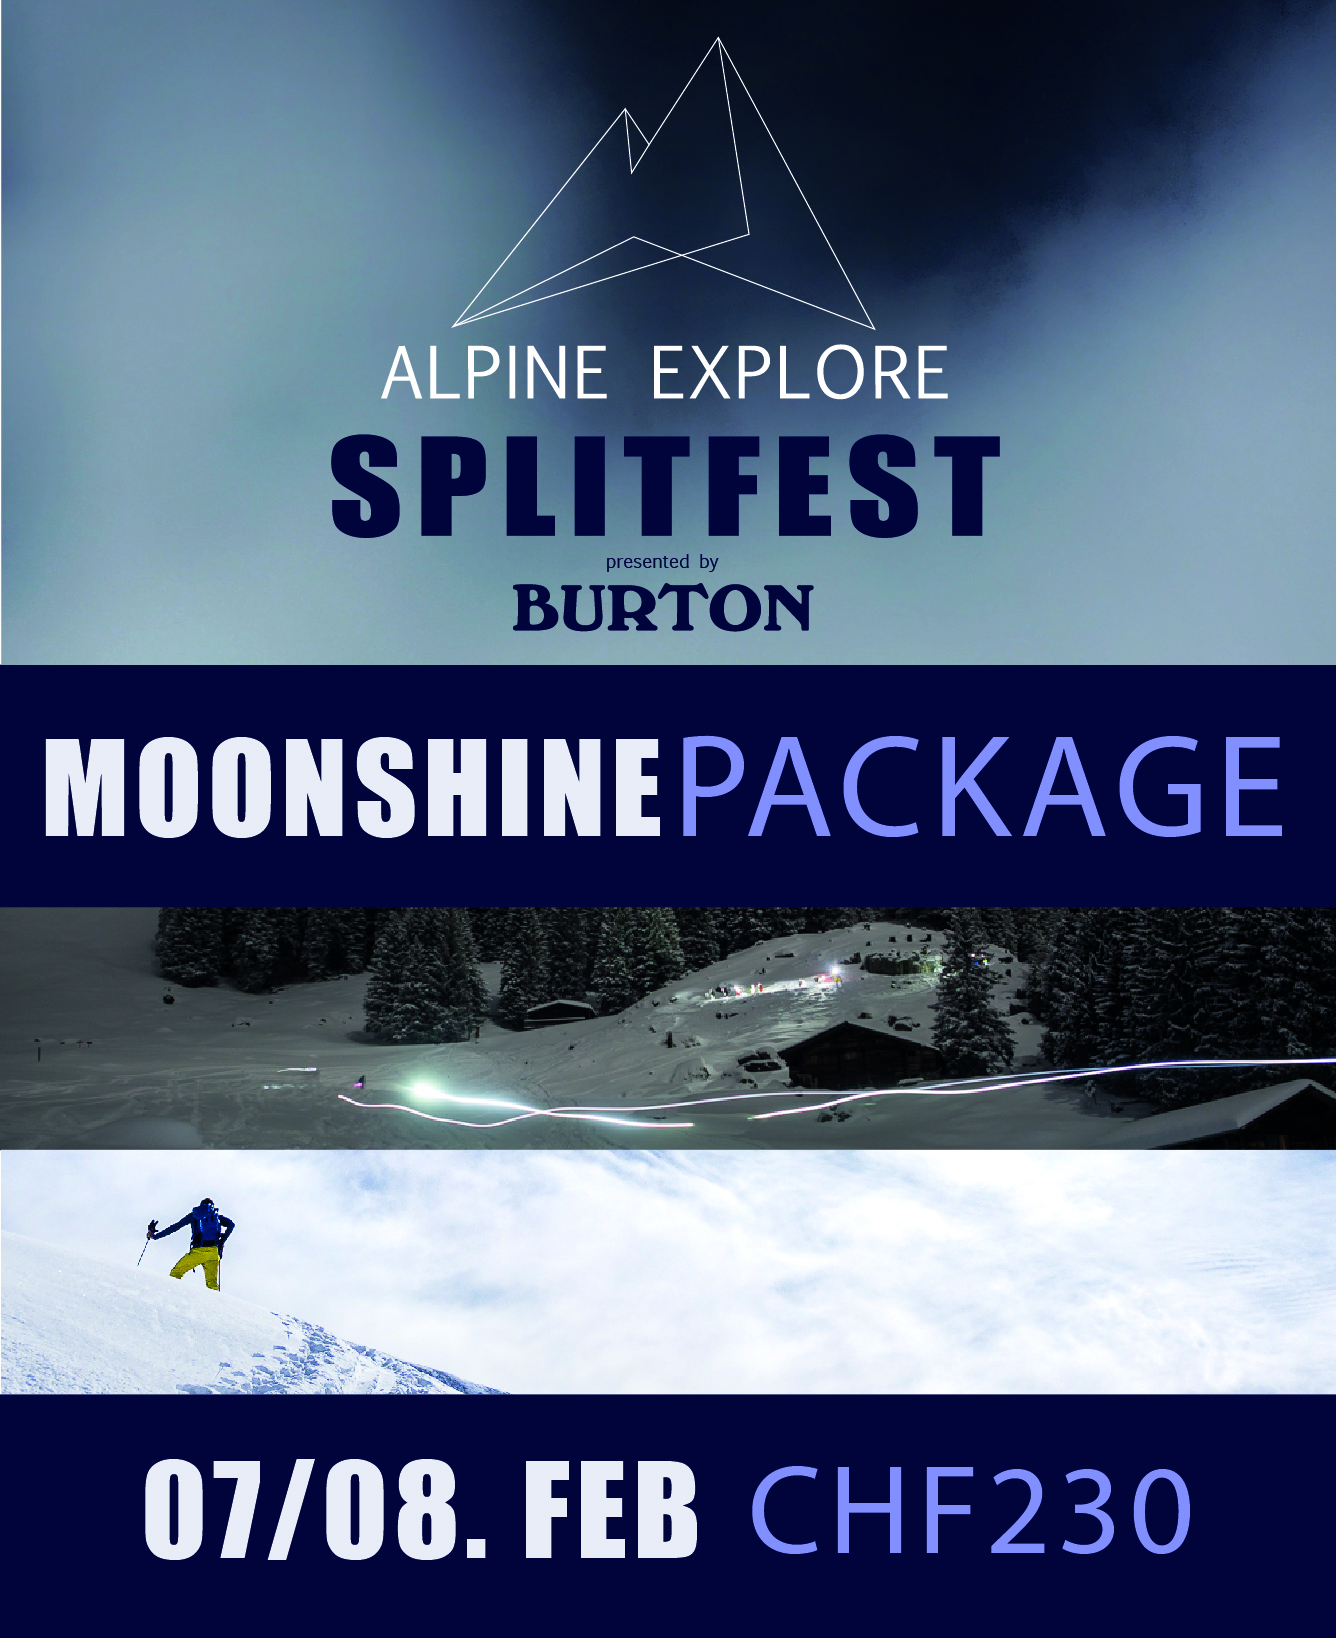 Moonshine Package - Alpine Explore Splitfest 2020 001